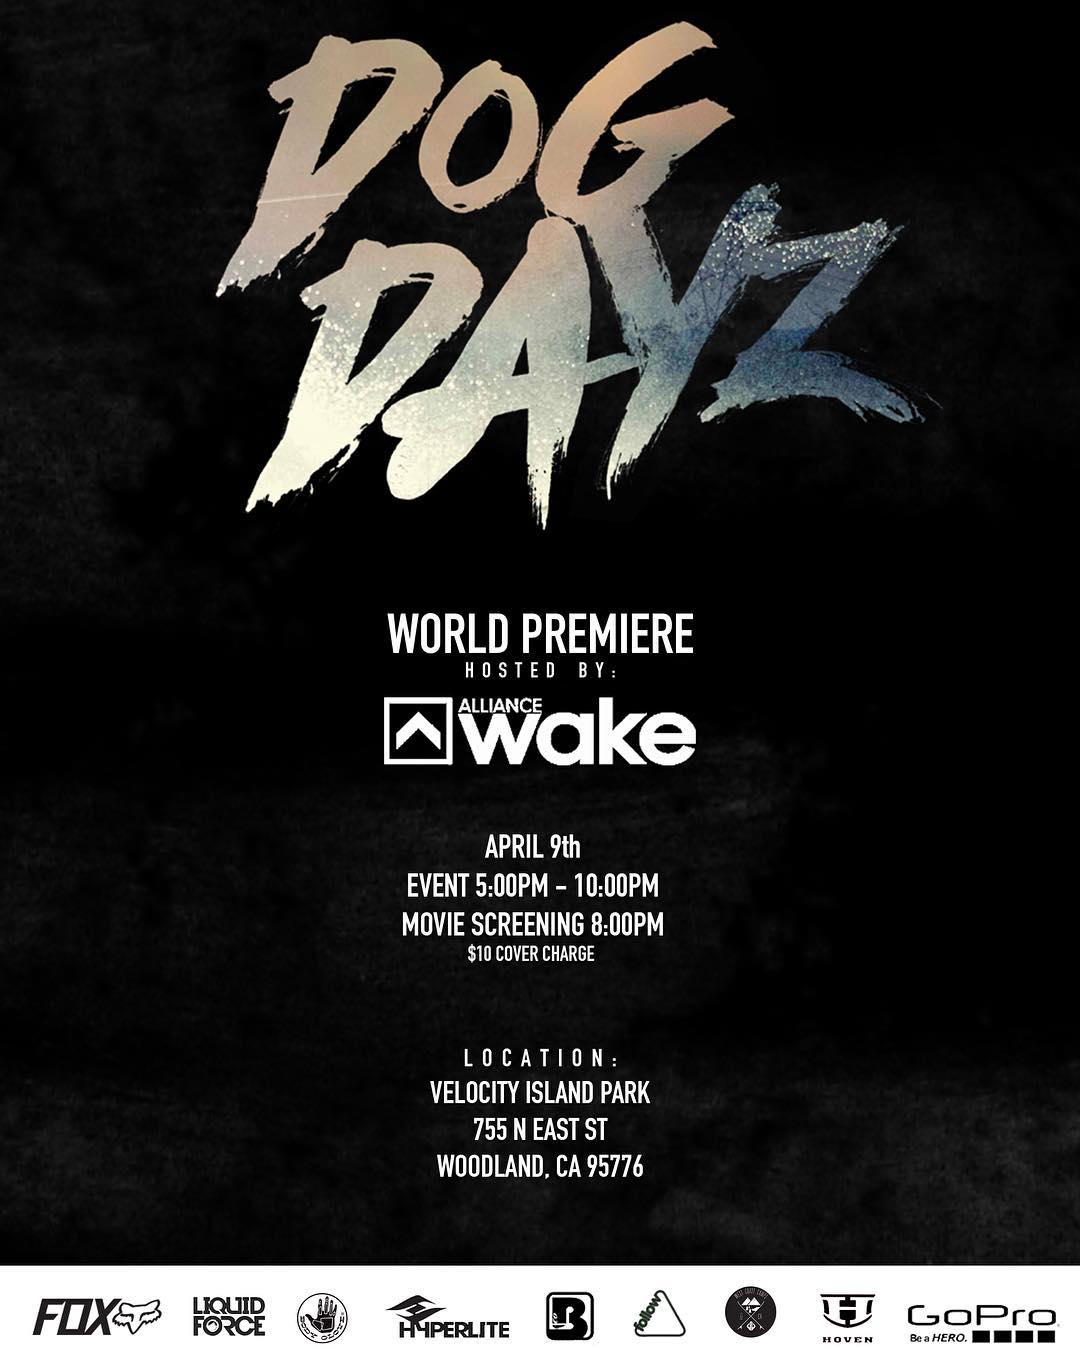 The @dogdayzfilm is finished!! The premiere is set for April 9th at @velocityislandpark hosted by our good friends at @alliancewake .  We can't wait to see what our team has put together for everyone!  #hovenvision #hovenwake #justbusylivin #dogdayz...